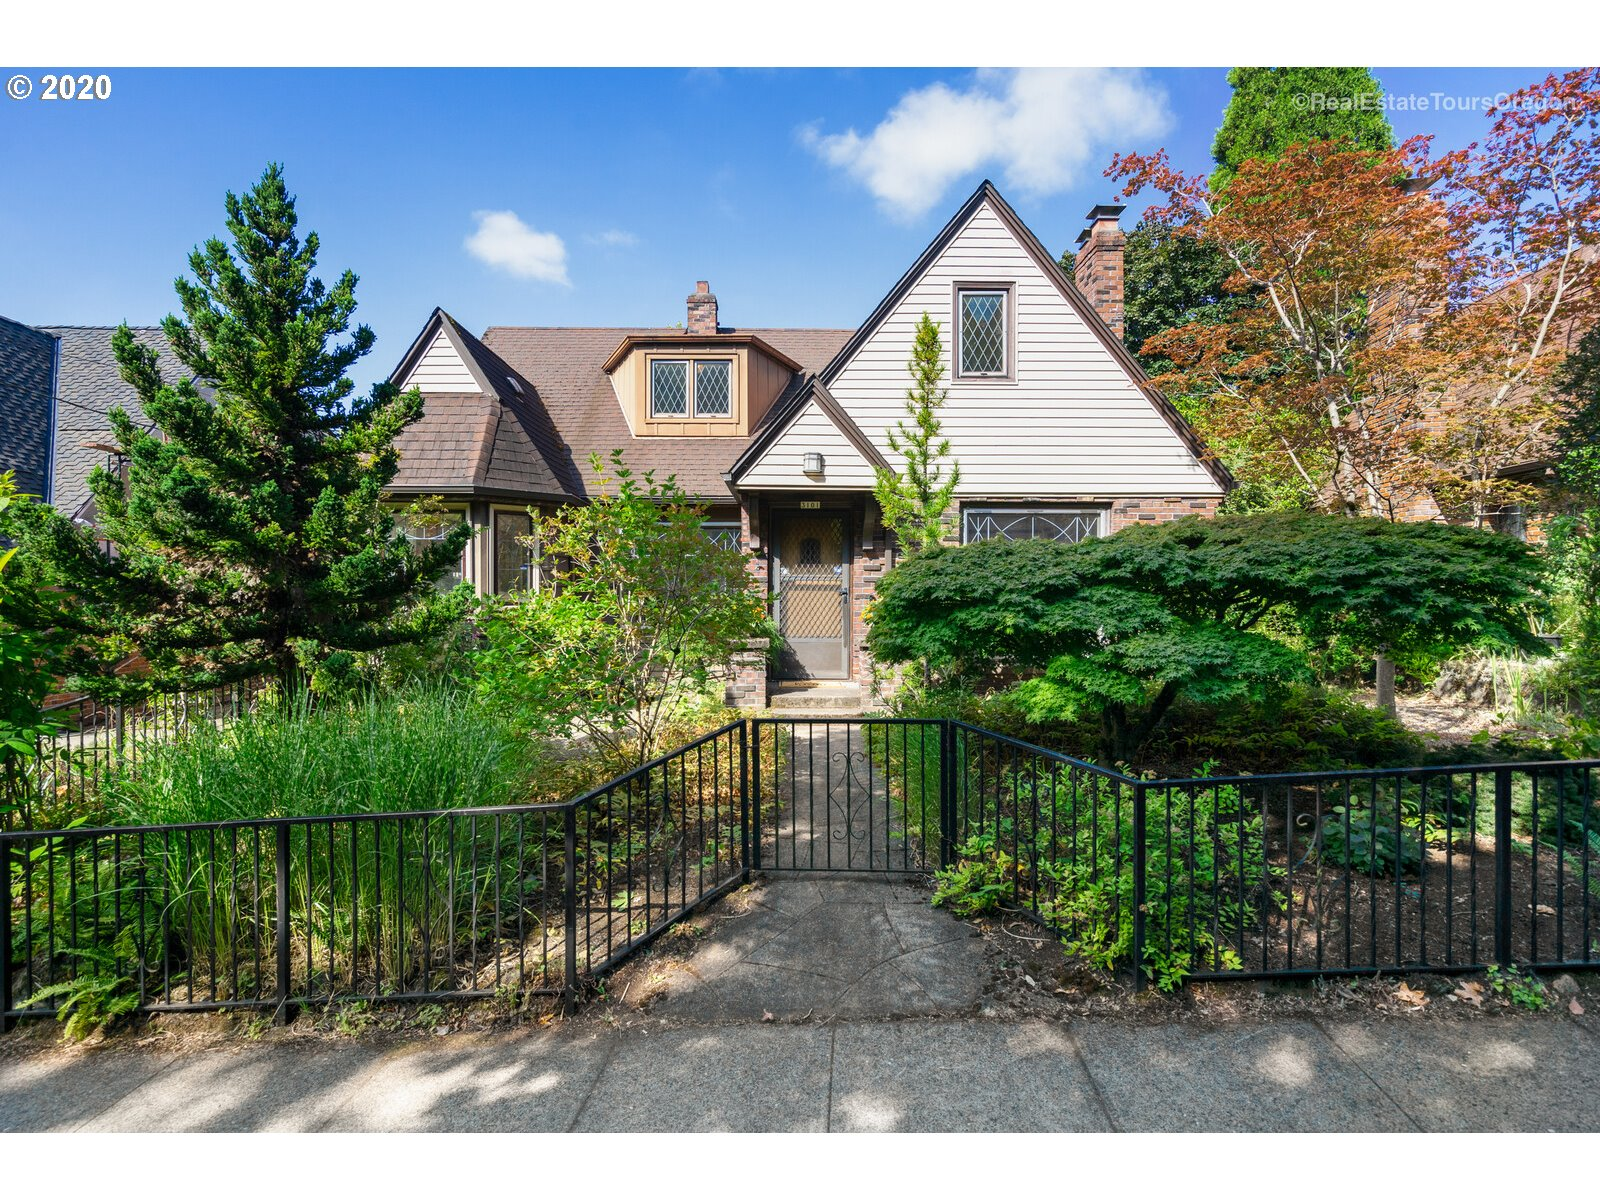 Charming Tudor home in sought after Beaumont neighborhood w/Alameda schools. 1st time on the market in over 50 yrs! Home features many original period pieces from the doors,built-ins, lights,to the beautiful leaded glass windows & wood trim & flrs this home exudes charm & is just waiting for someone's personal touch.Mostly main level living w/eat-in kitchen,dining,living,2 bd & 1 bth on main,large 3rd bd w/bonus rm upstairs&spacious family rm&storage on LL.Close to parks,shops,restaurants&more! [Home Energy Score = 1. HES Report at https://rpt.greenbuildingregistry.com/hes/OR10185956]